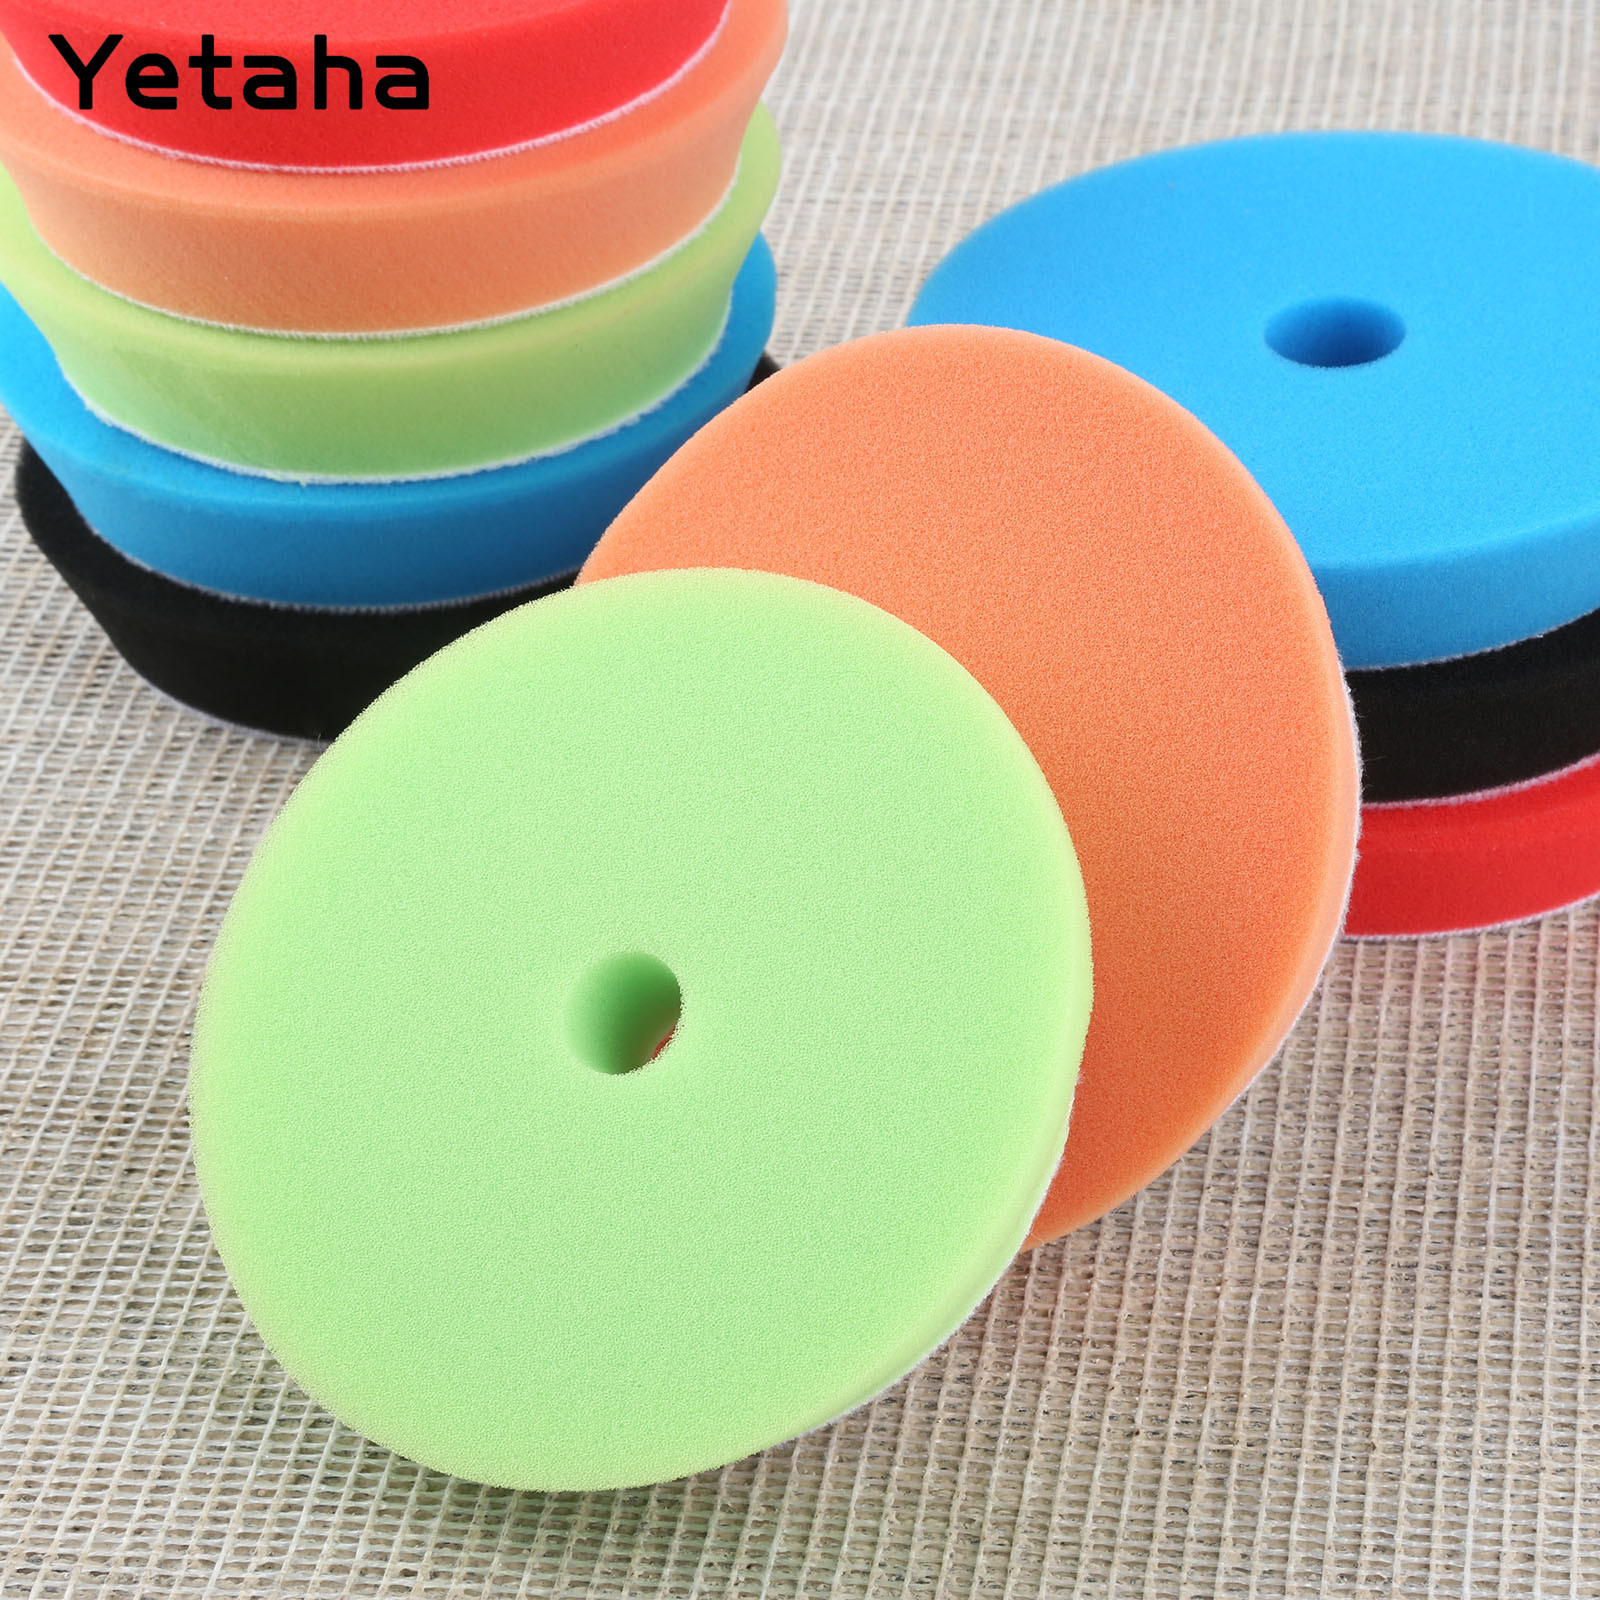 Image 5 - Yetaha 5Pcs 6inch 150mm Car Polishing Buffing Sponge Pads Set Car Wash For Car Polisher Cleaning Detailing Polishing Tool-in Sponges, Cloths & Brushes from Automobiles & Motorcycles